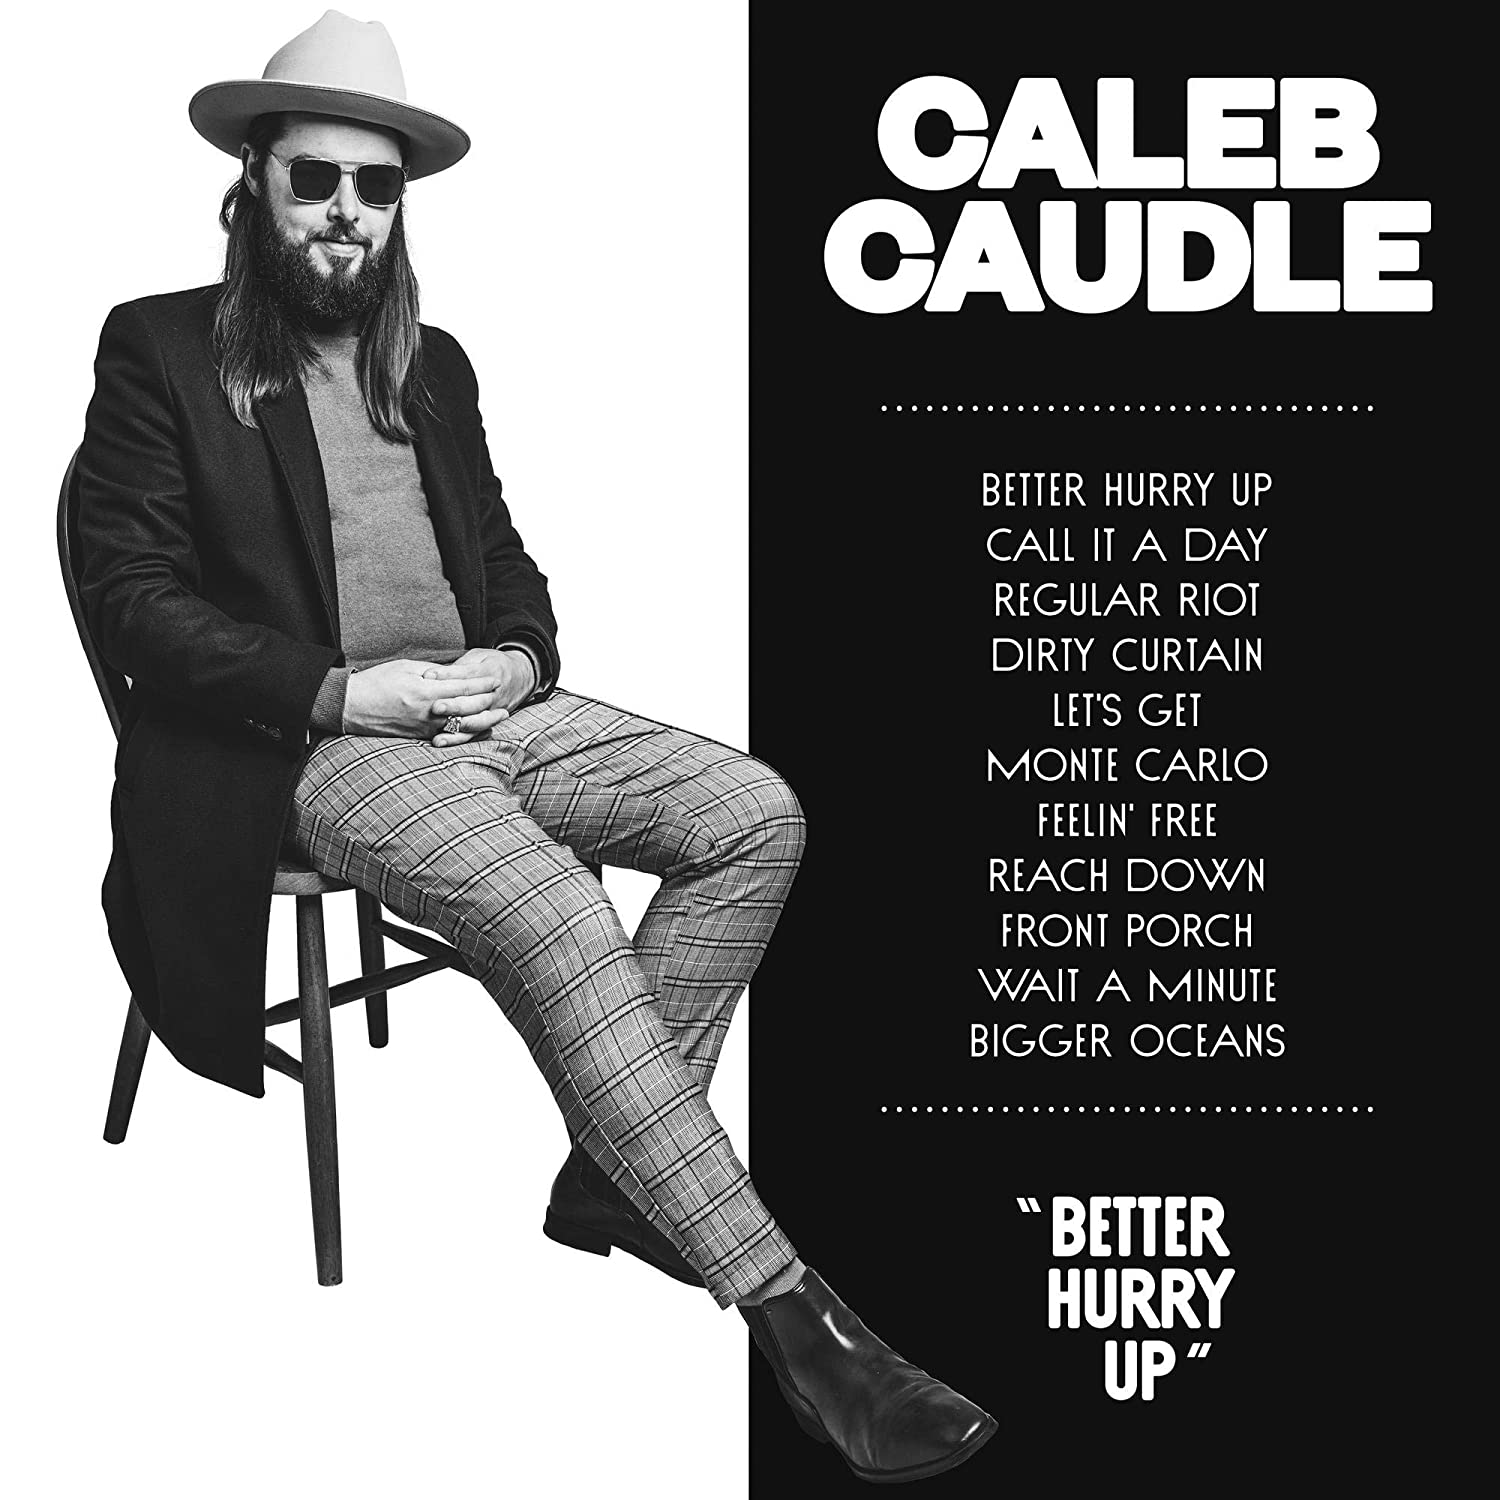 Buy Caleb Caudle: Better Hurry Up New or Used via Amazon